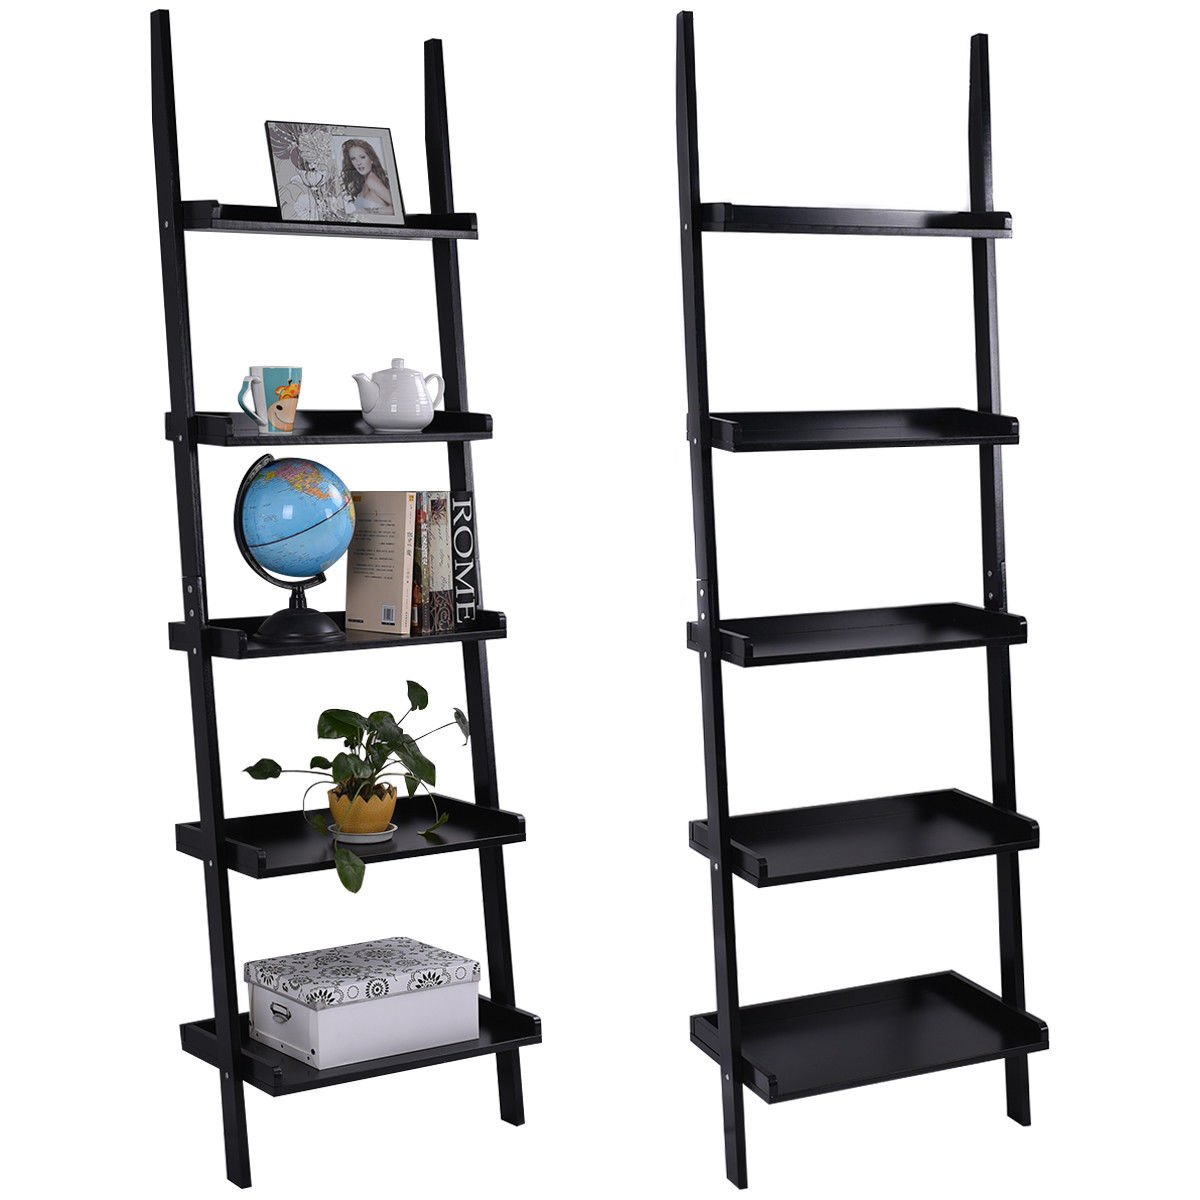 TANGKULA Ladder Bookcase 5-Tire Wood Leaning Shelf Wall Plant Shelf Ladder for Home Office Modern Flower Book Display Shelf Storage Rack Stable A-Frame Wooden Ladder Shelf